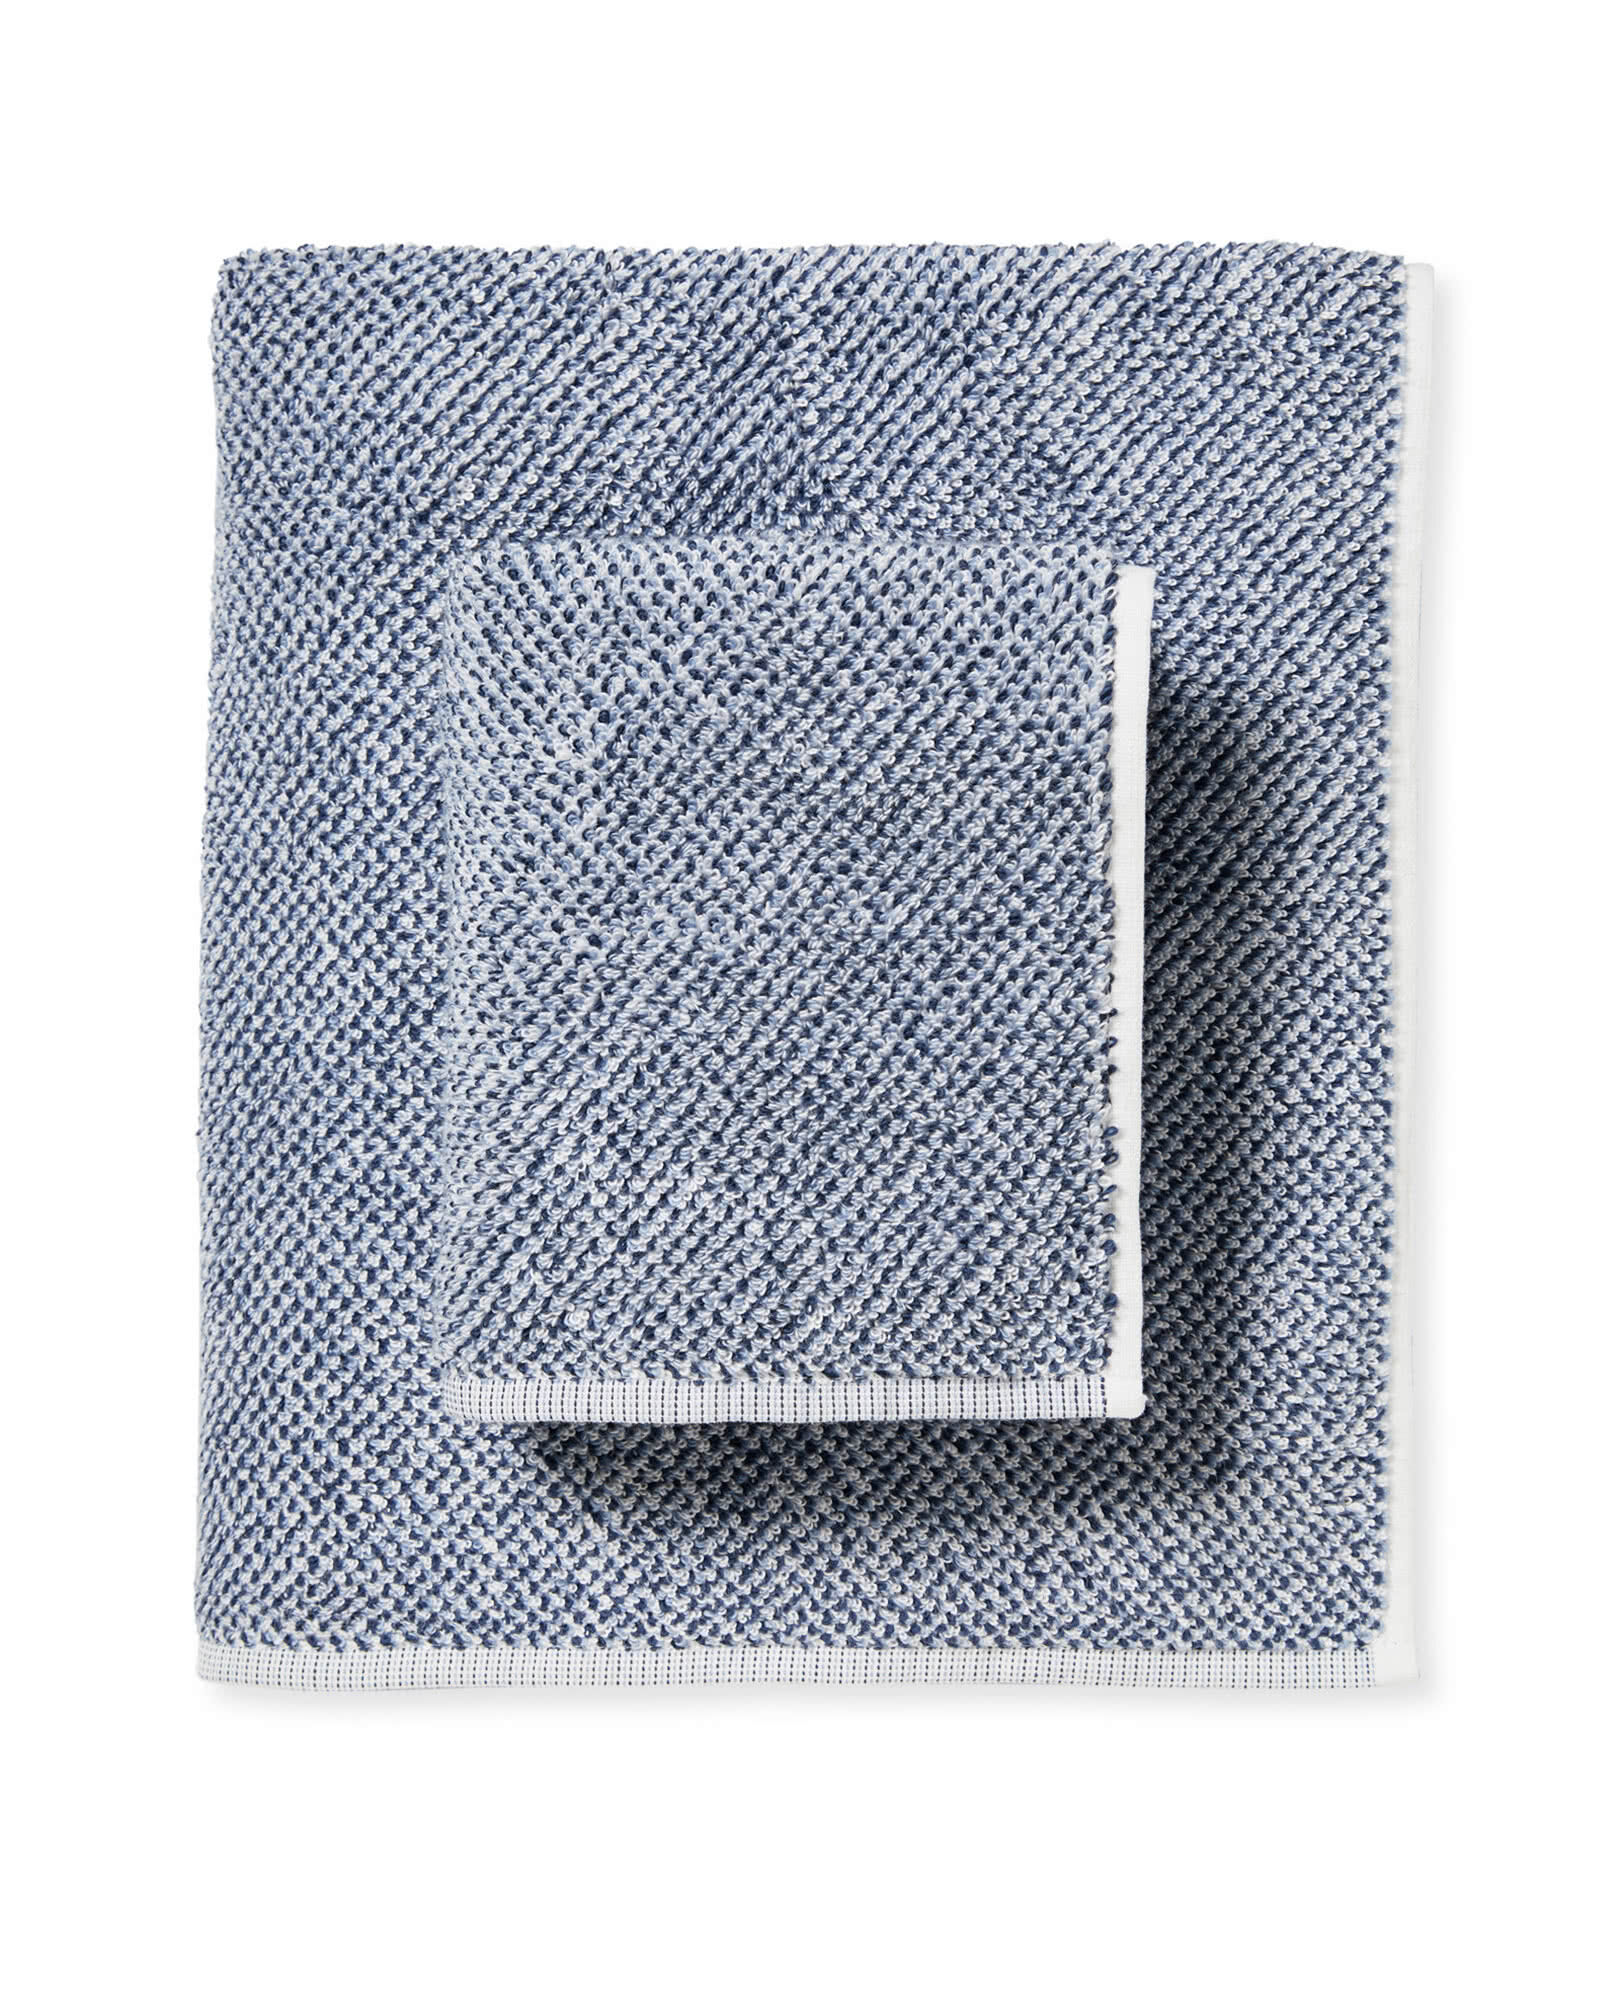 North Fork Bath Collection, Heathered Navy